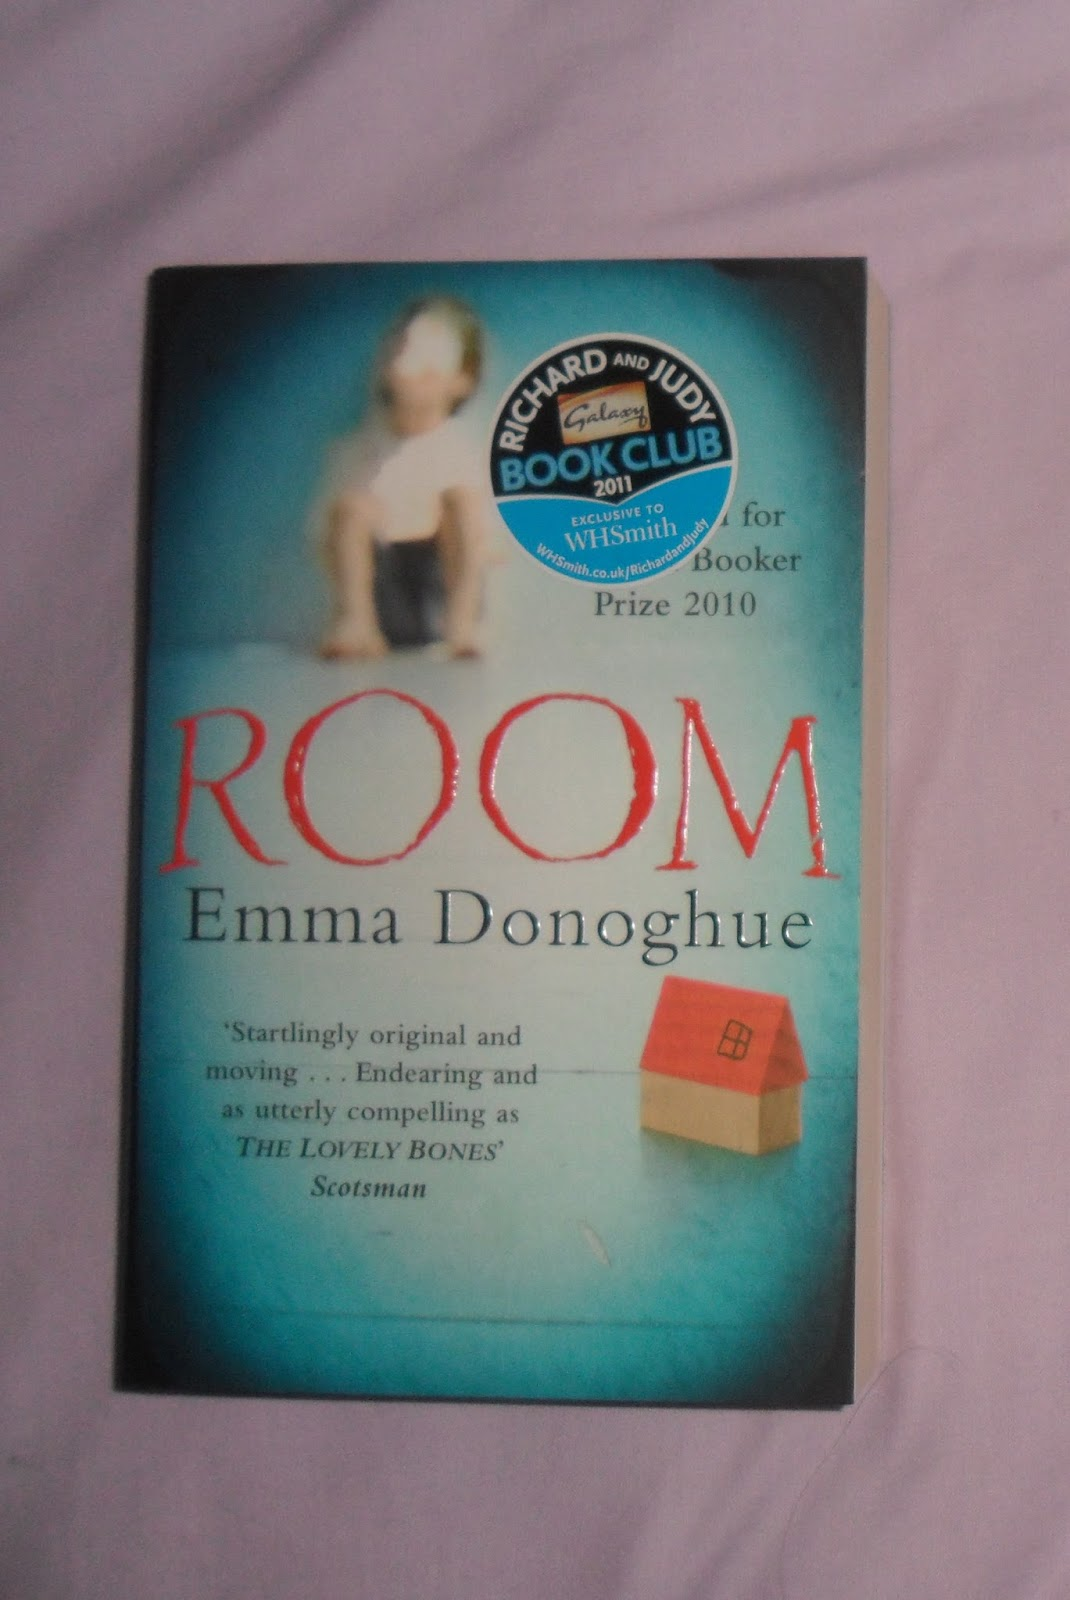 room book review The room in emma donoghue's room, a worldwide publishing smash that was shortlisted for the booker prize in 2010, is a garden shed, locked from the outside, in.